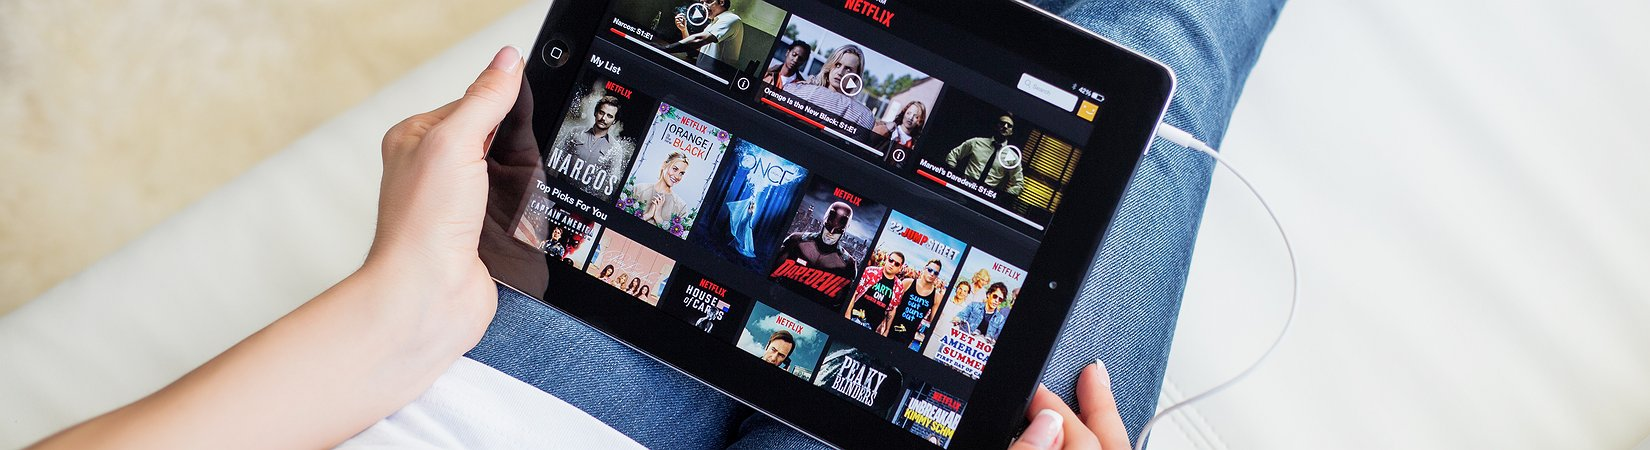 Netflix Q3 results prove the critics wrong